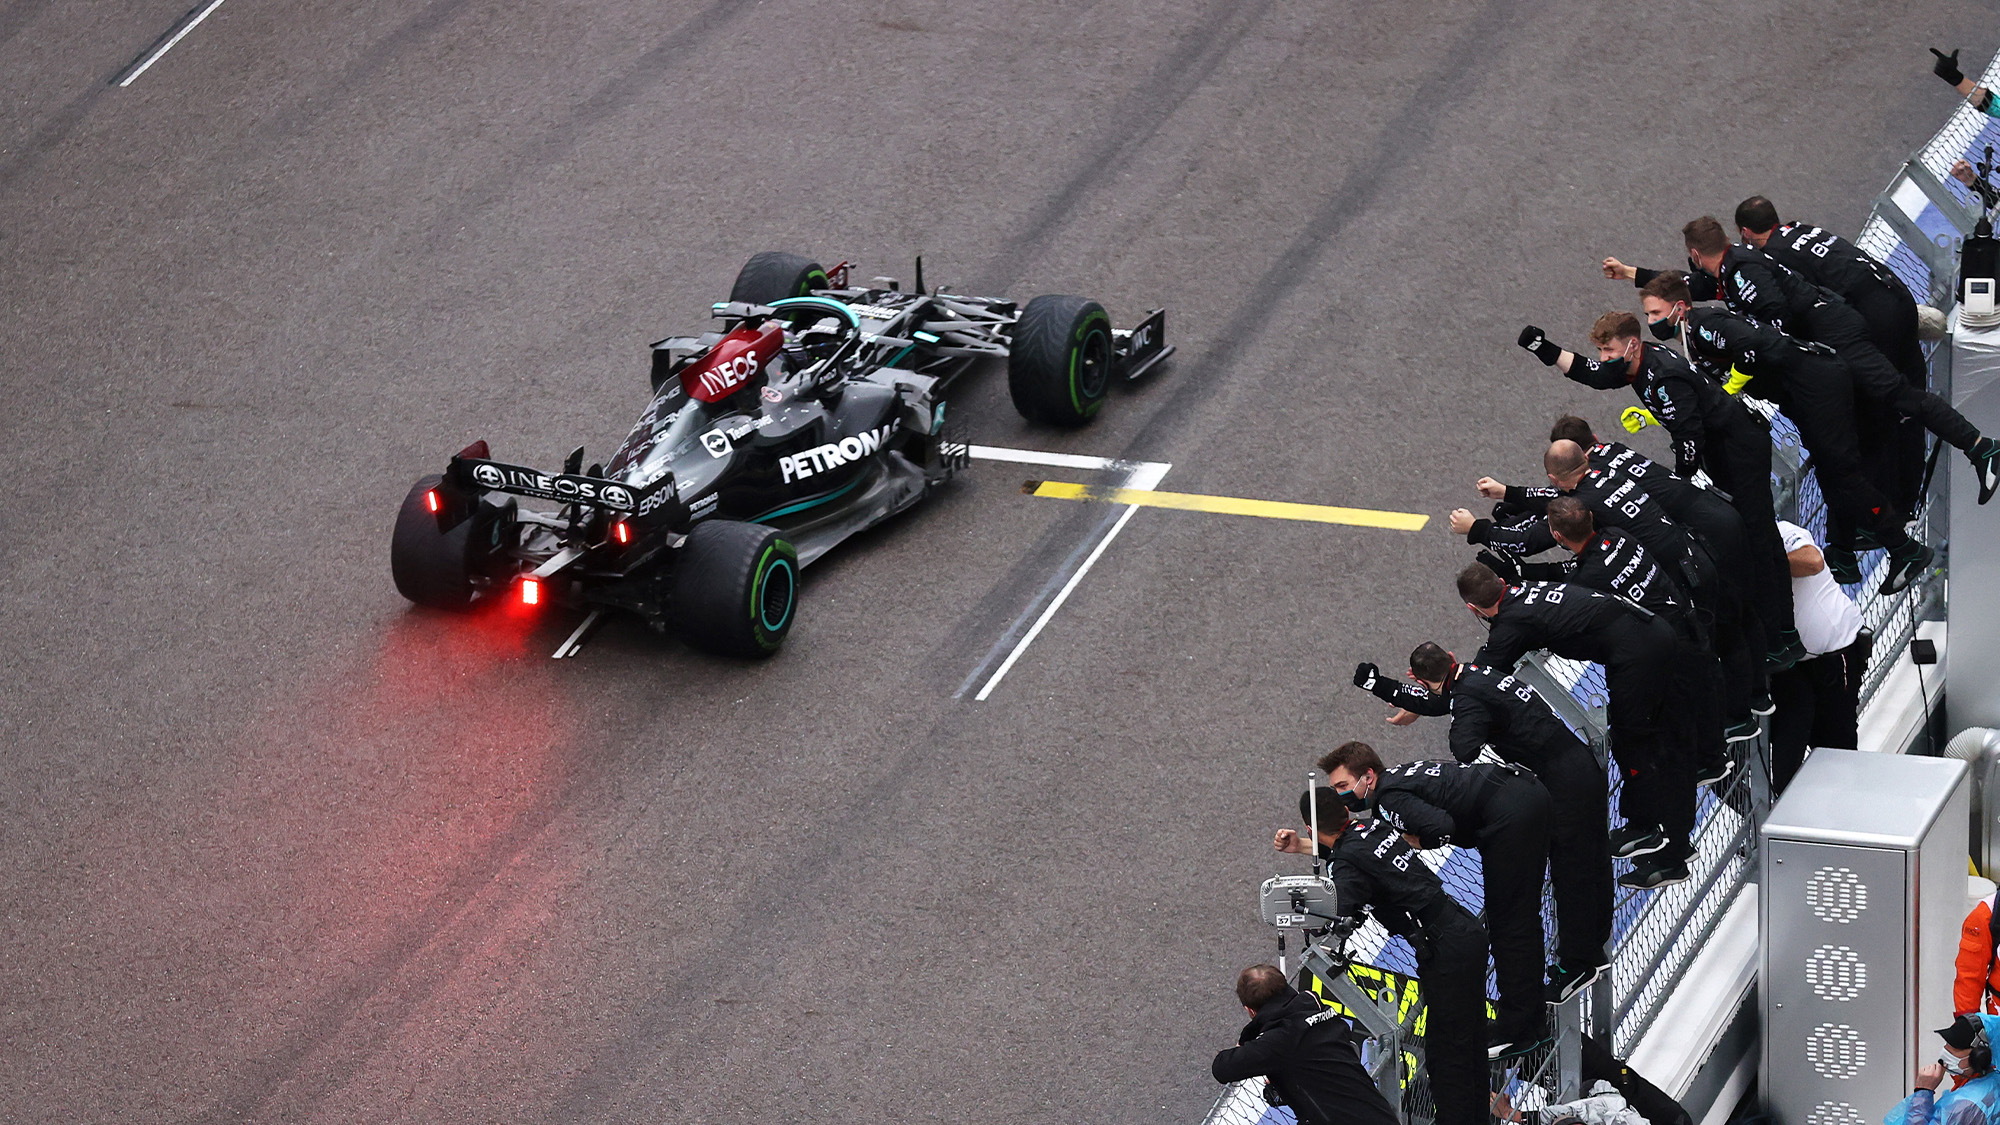 Lewis Hamilton cheered by his Mercedes team as he wins the 2021 Russian Grand Prix